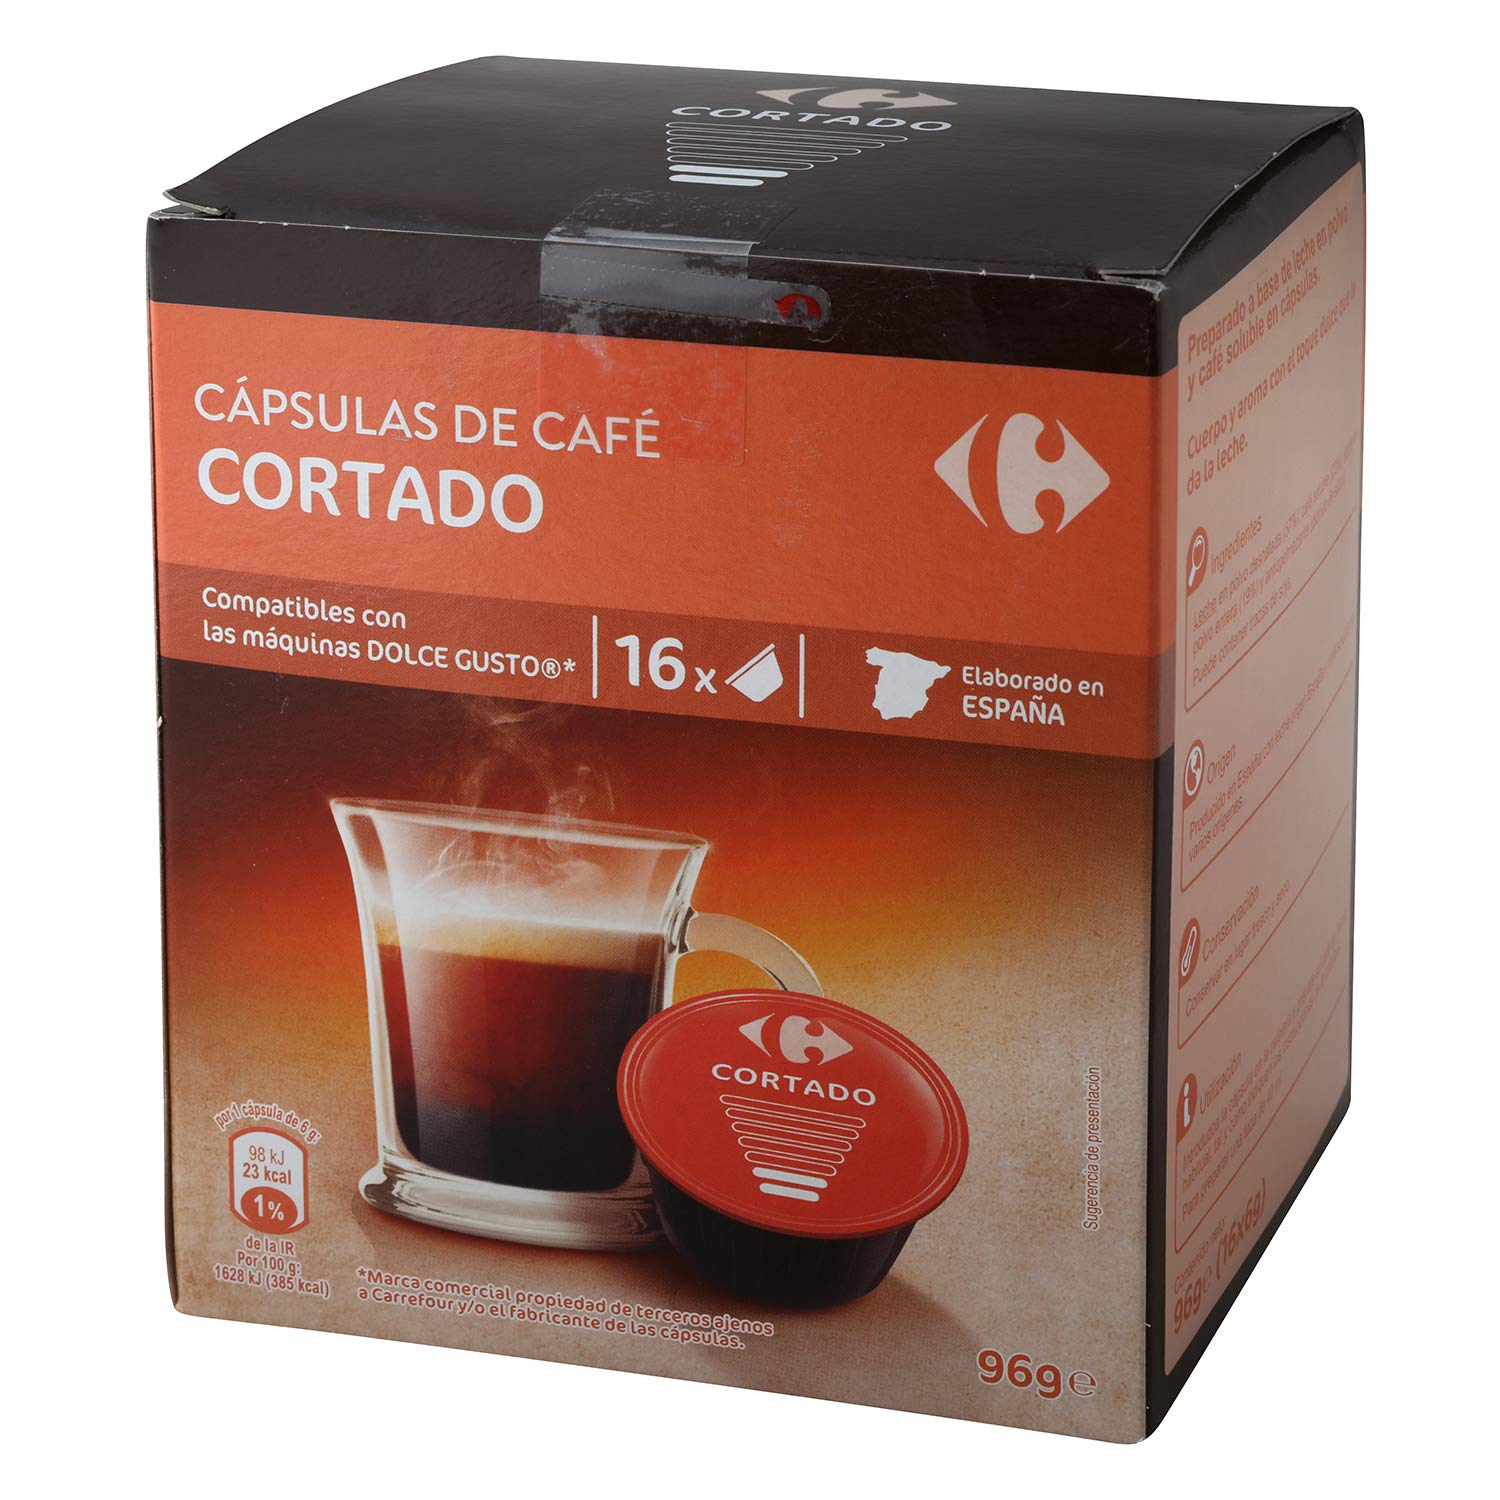 Amazon.com : 4 Pack Carrefour Coffee Pods - Cut Espresso Flavor - Capsules Compatible with Nespresso Machine & Dolce - Made in Spain - 10 Single Serve ...